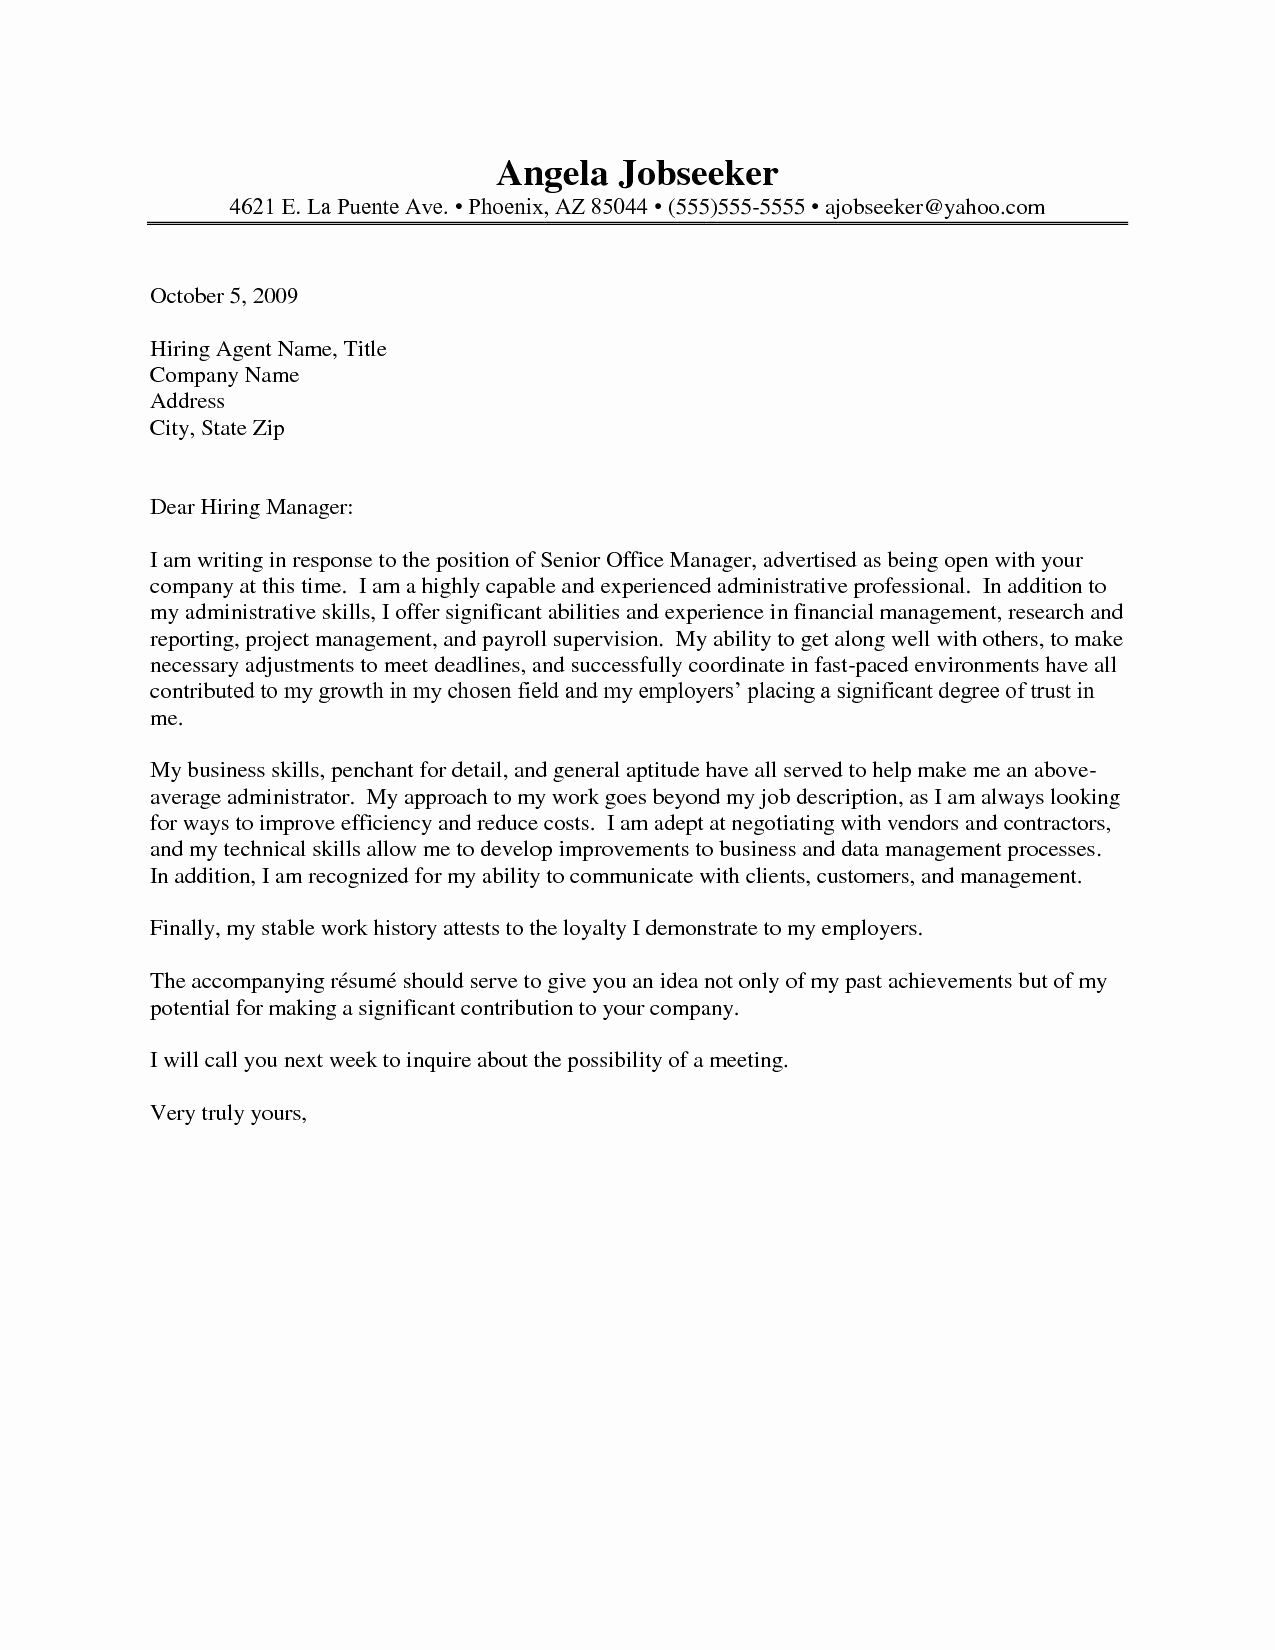 Cover Letter for Administrative Position Best Of Administrative assistant Resume Cover Letter